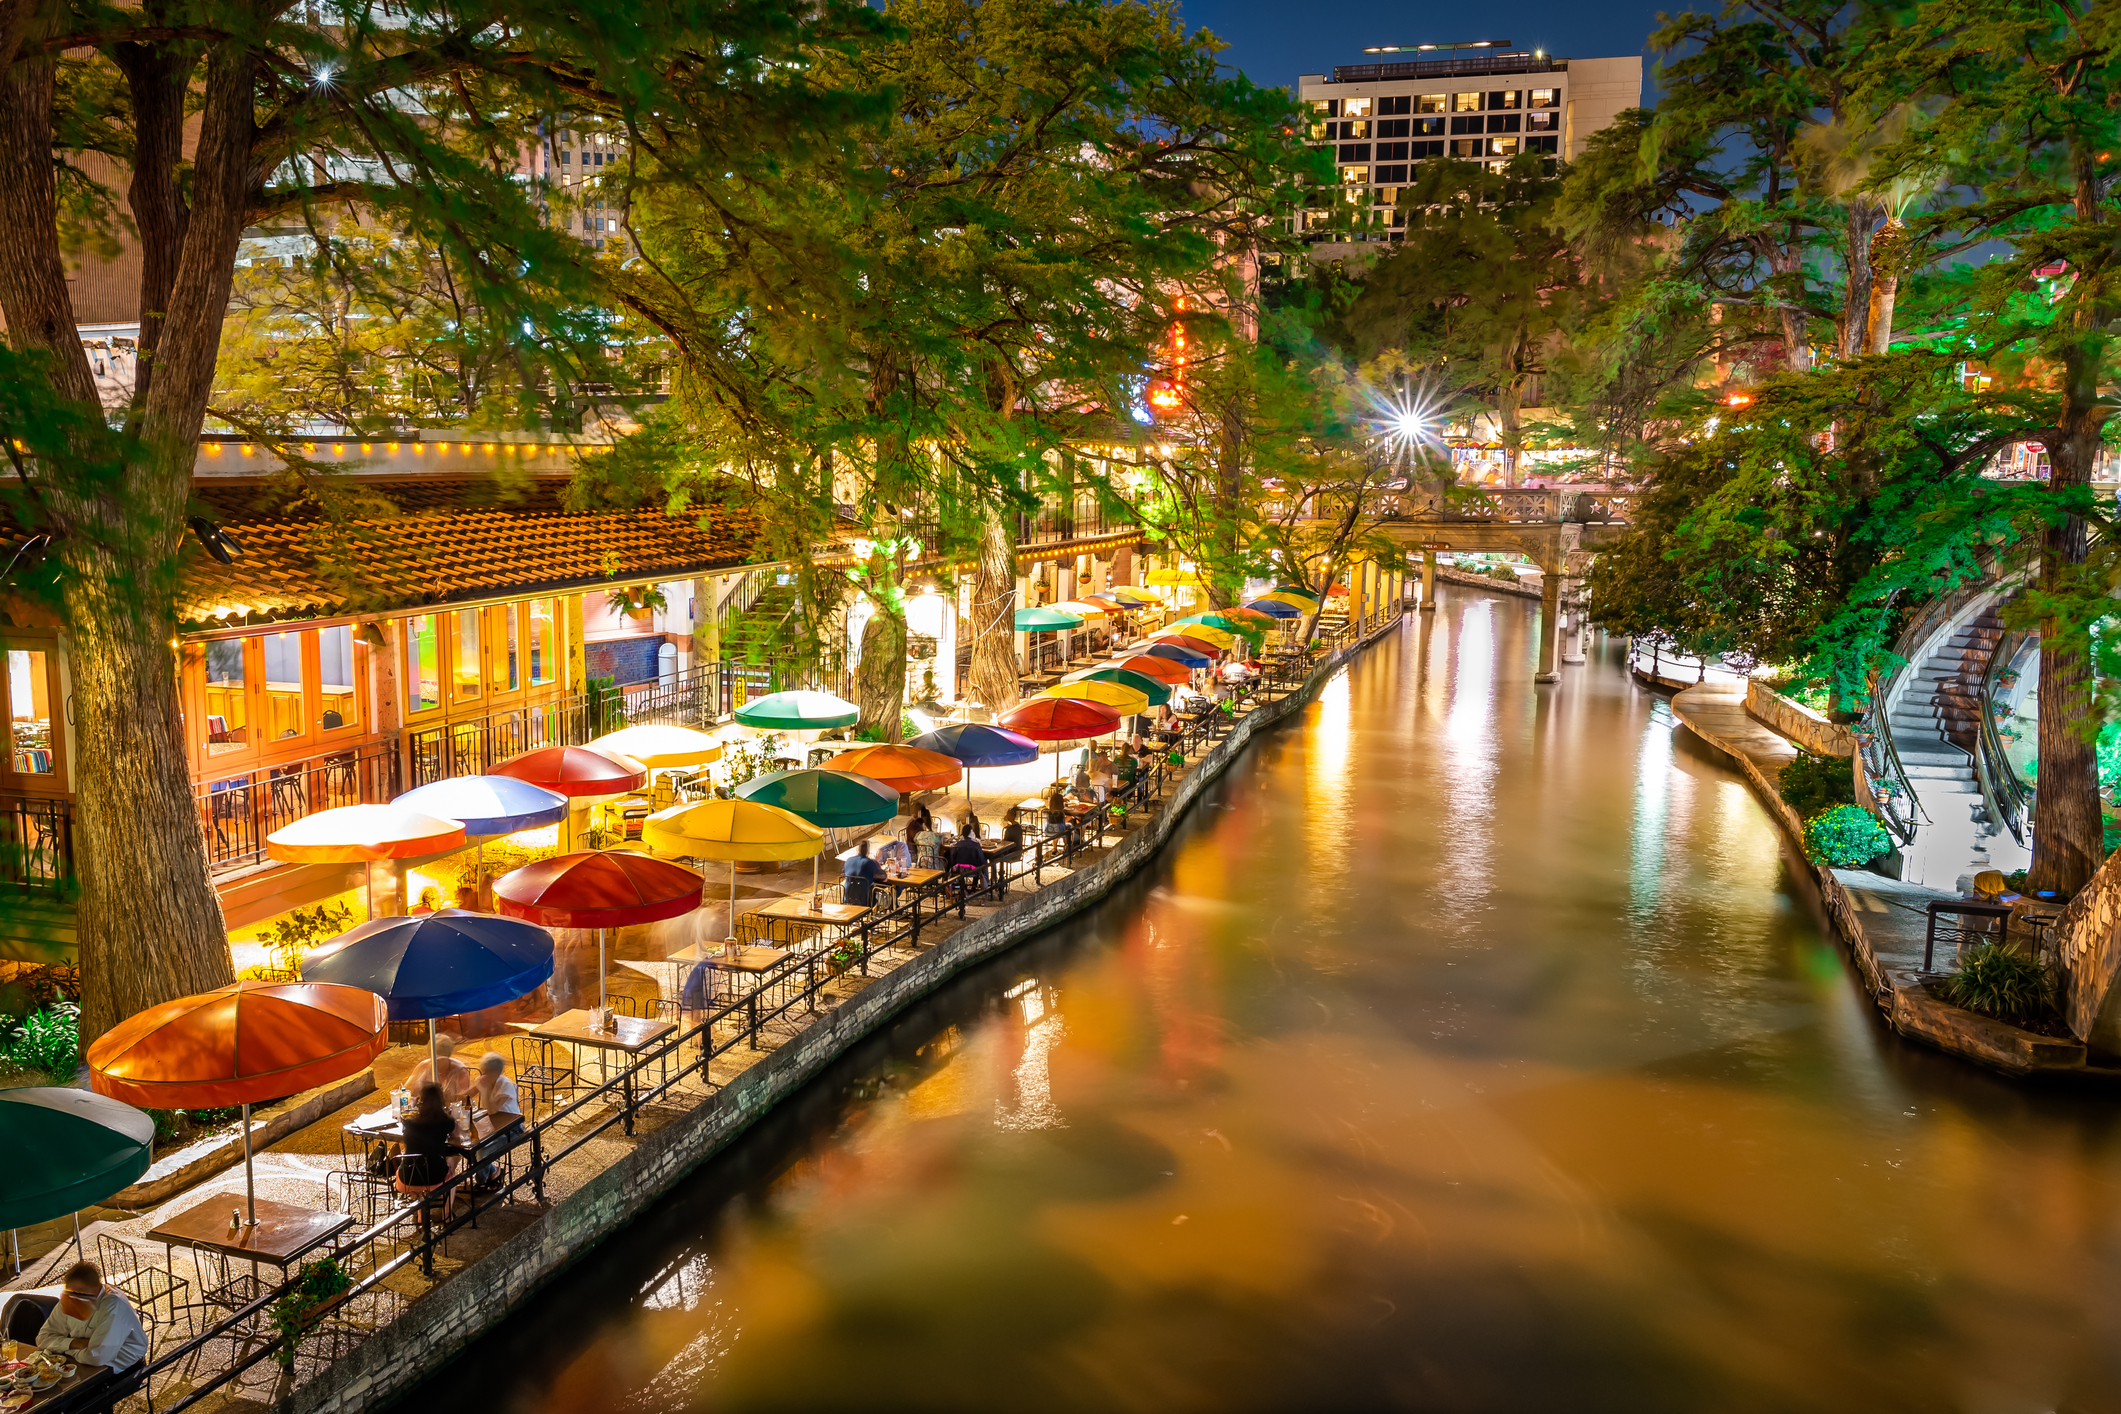 Long exposure night photography of San Antonio Riverwalk